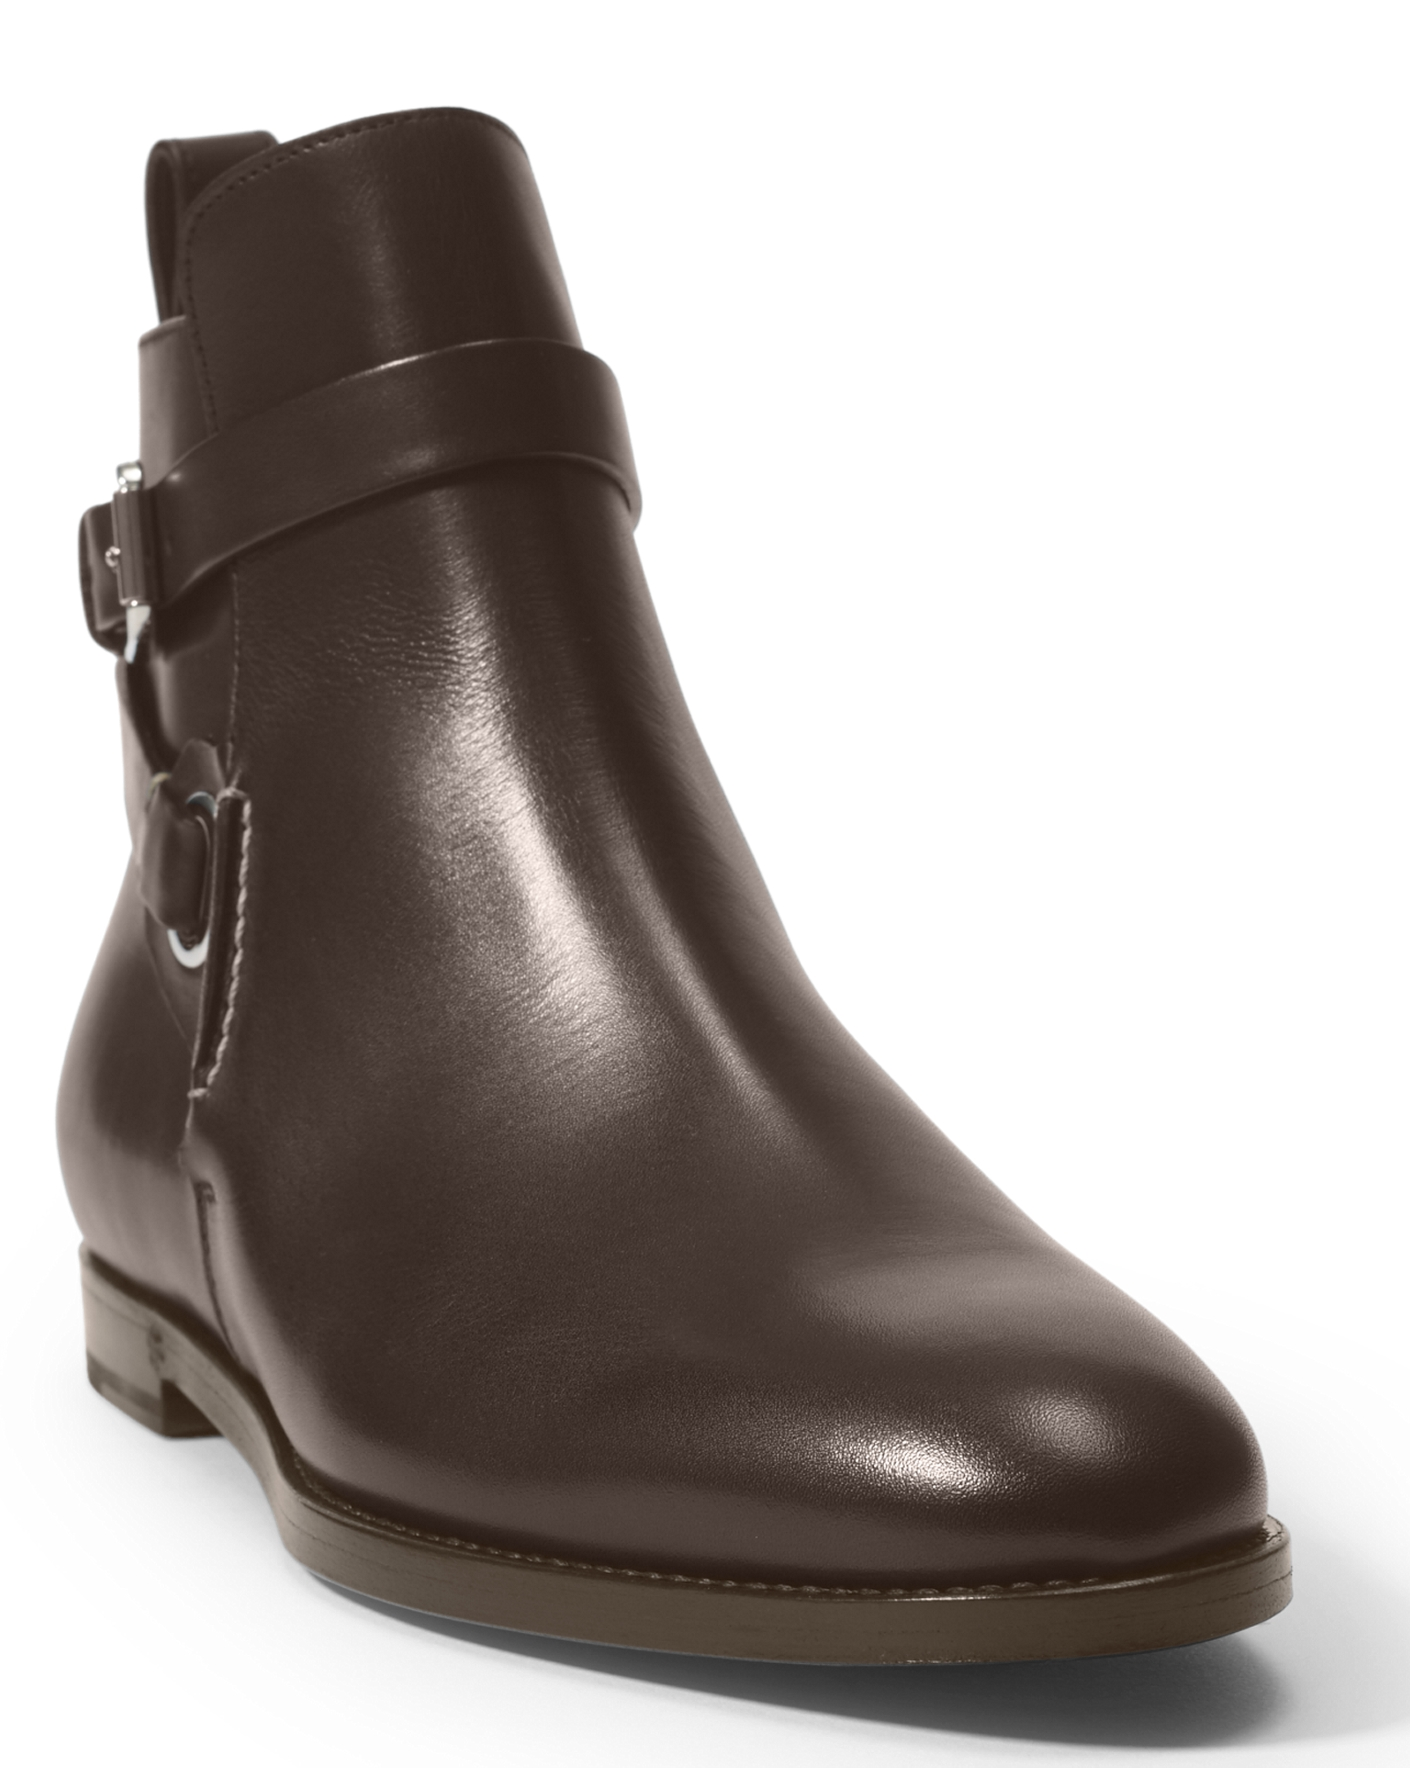 Women's Boots & Booties - Riding, Rain, & More | Ralph Lauren